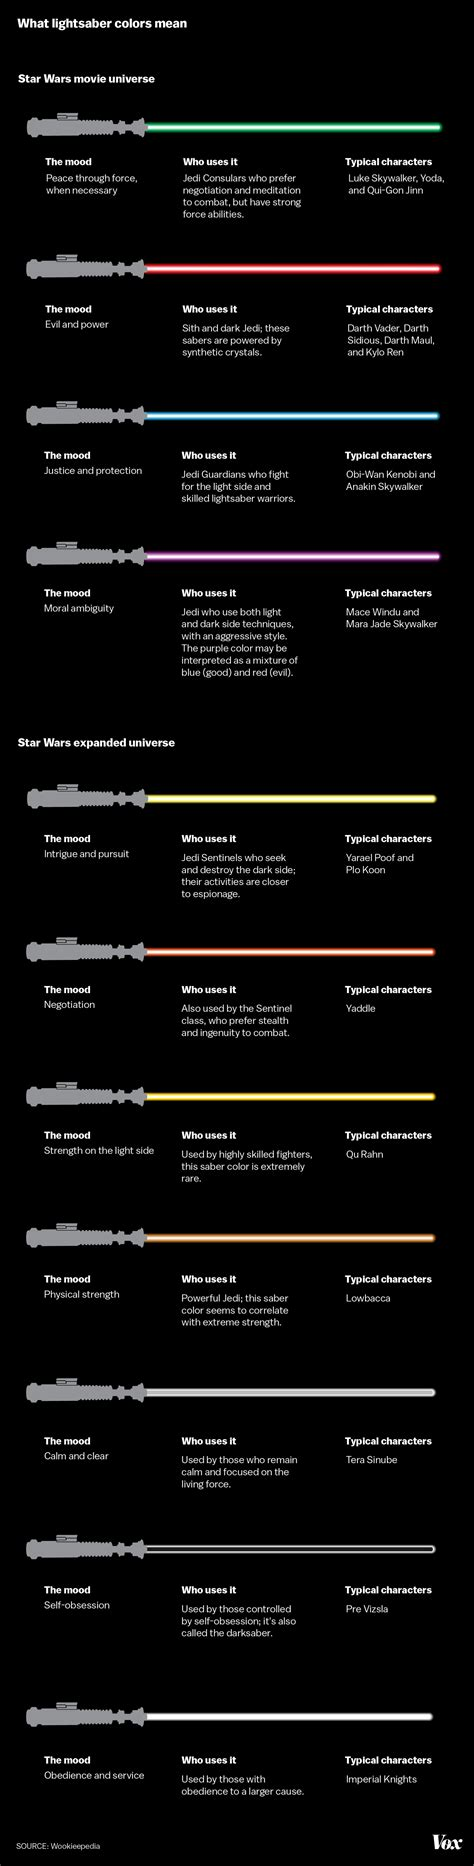 what color lightsaber lightsaber silver color meaning